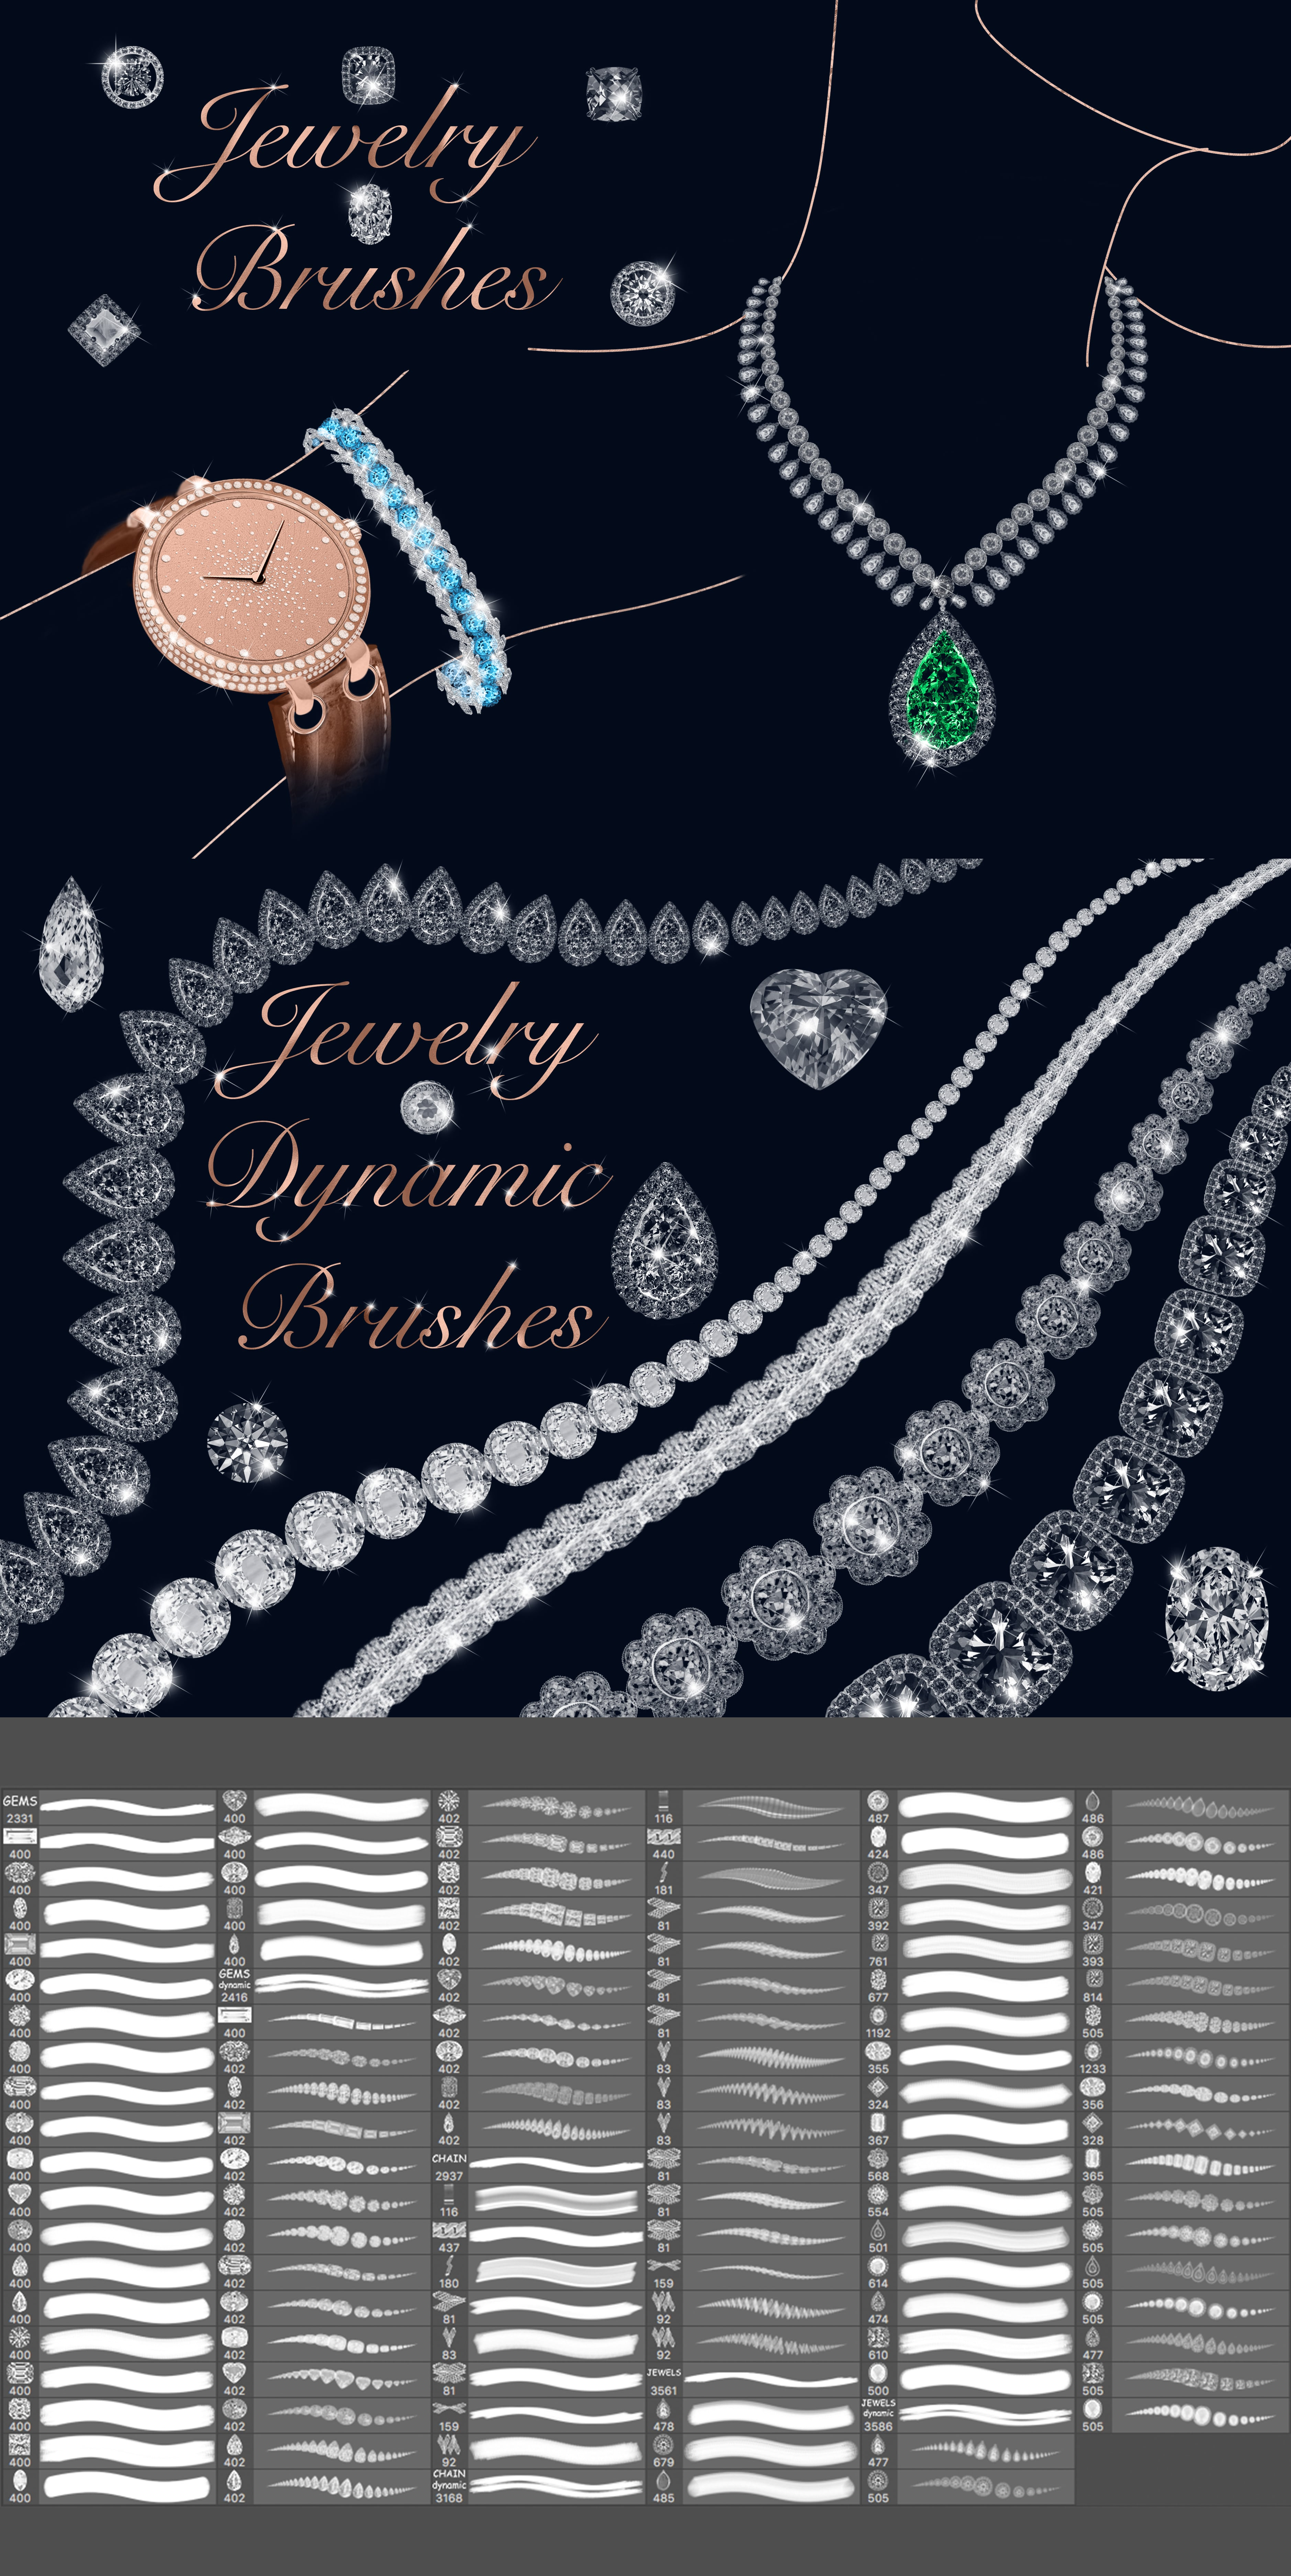 Digital Painting Assets - almost 3000 Elements - Jewelry